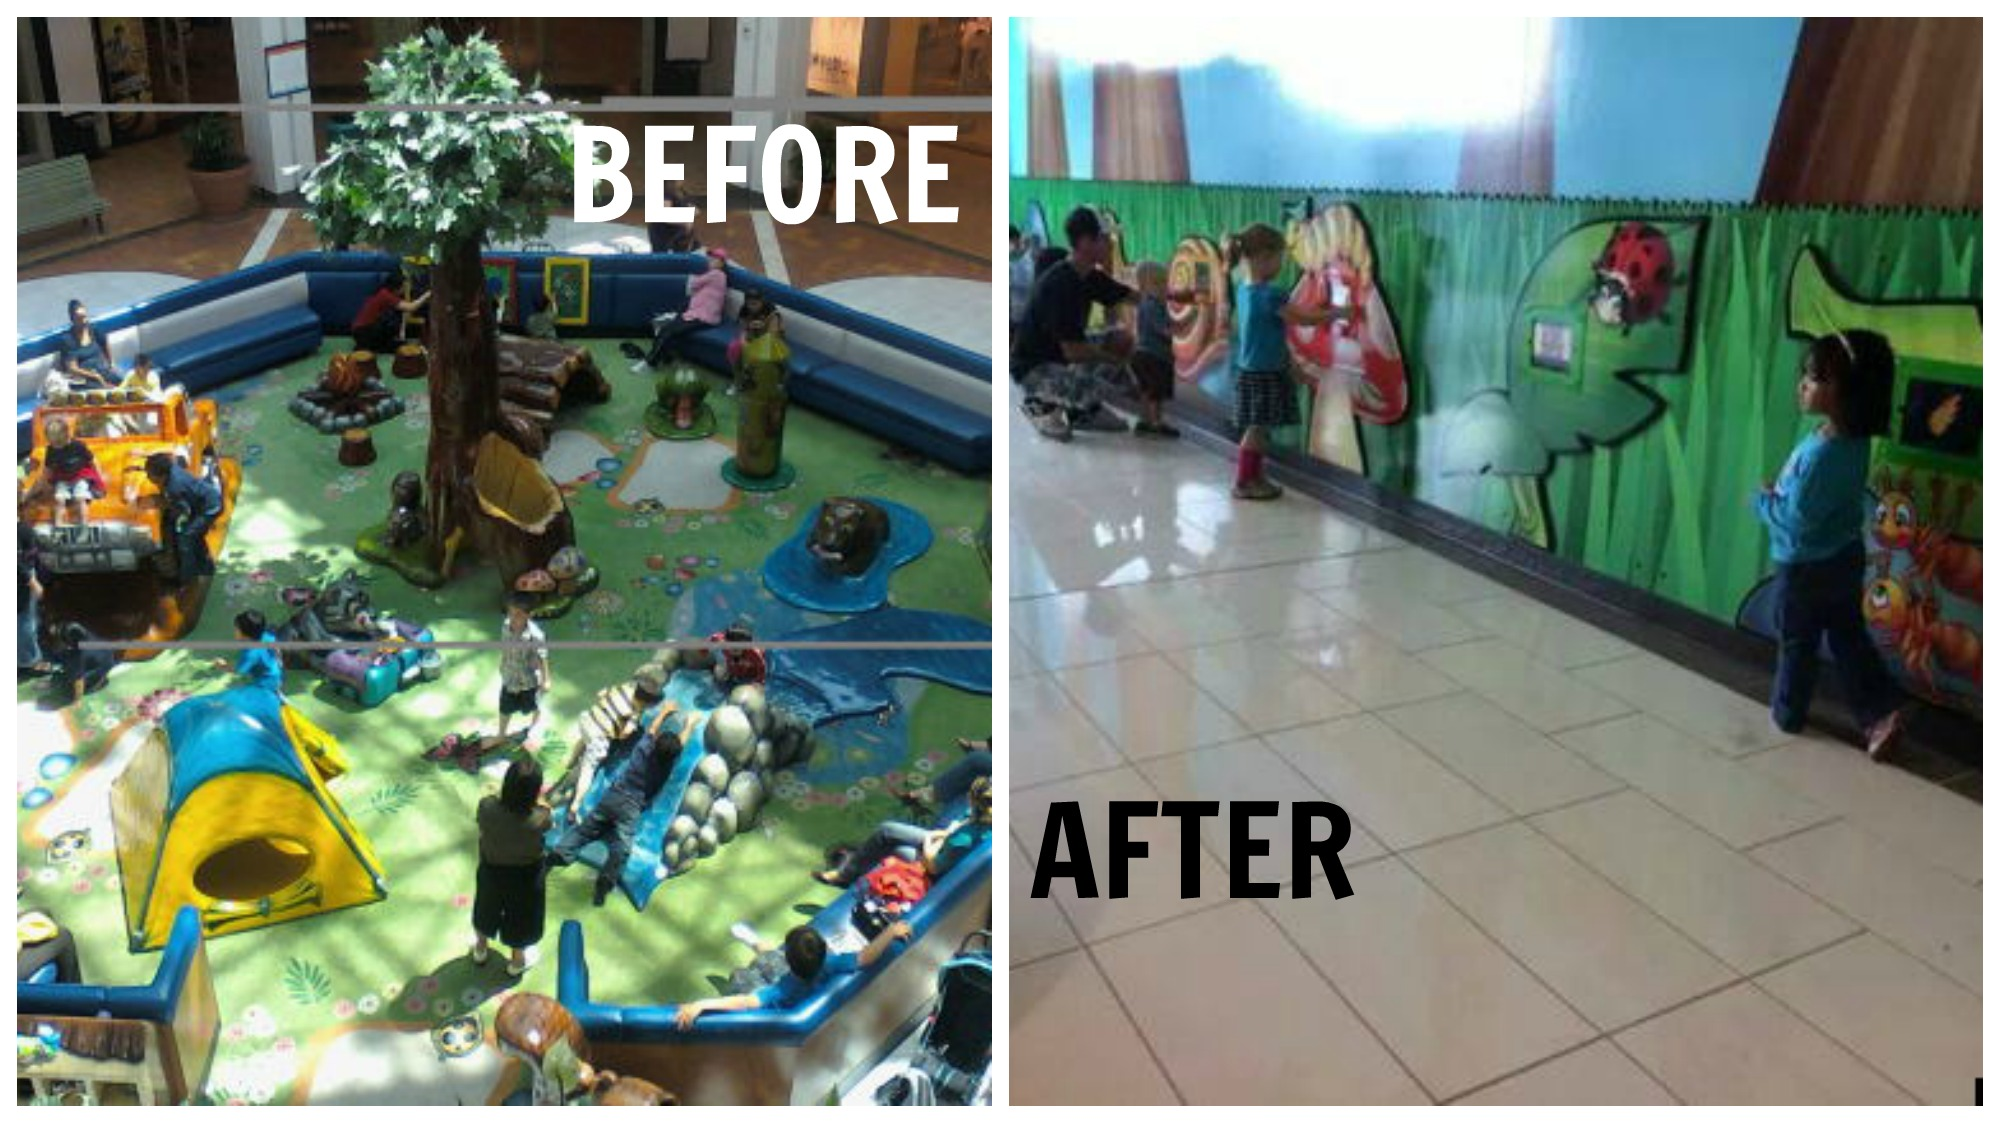 Mall Replaces Playgrounds With iPads